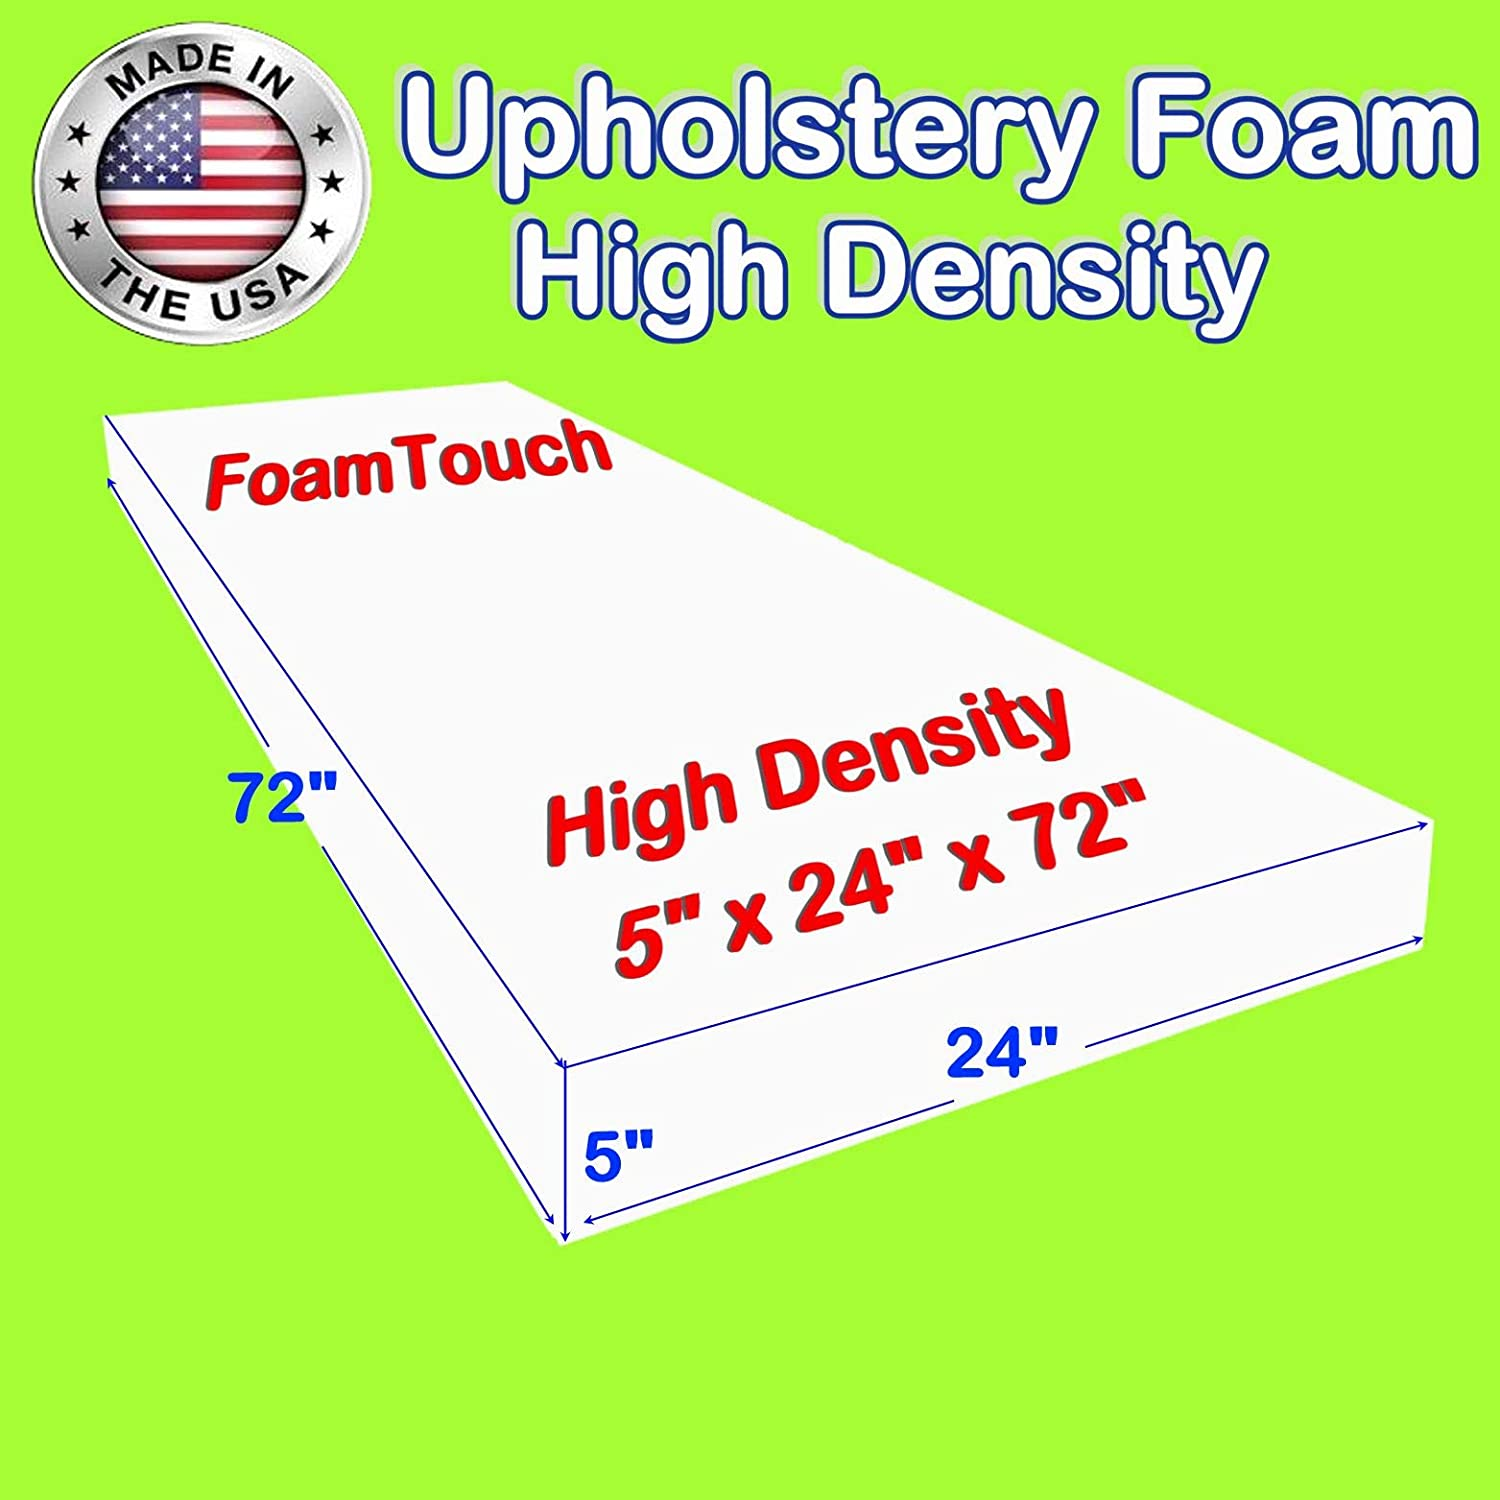 5 H x 24 W x 72 L Made in USA FoamTouch Upholstery Foam Cushion High Density